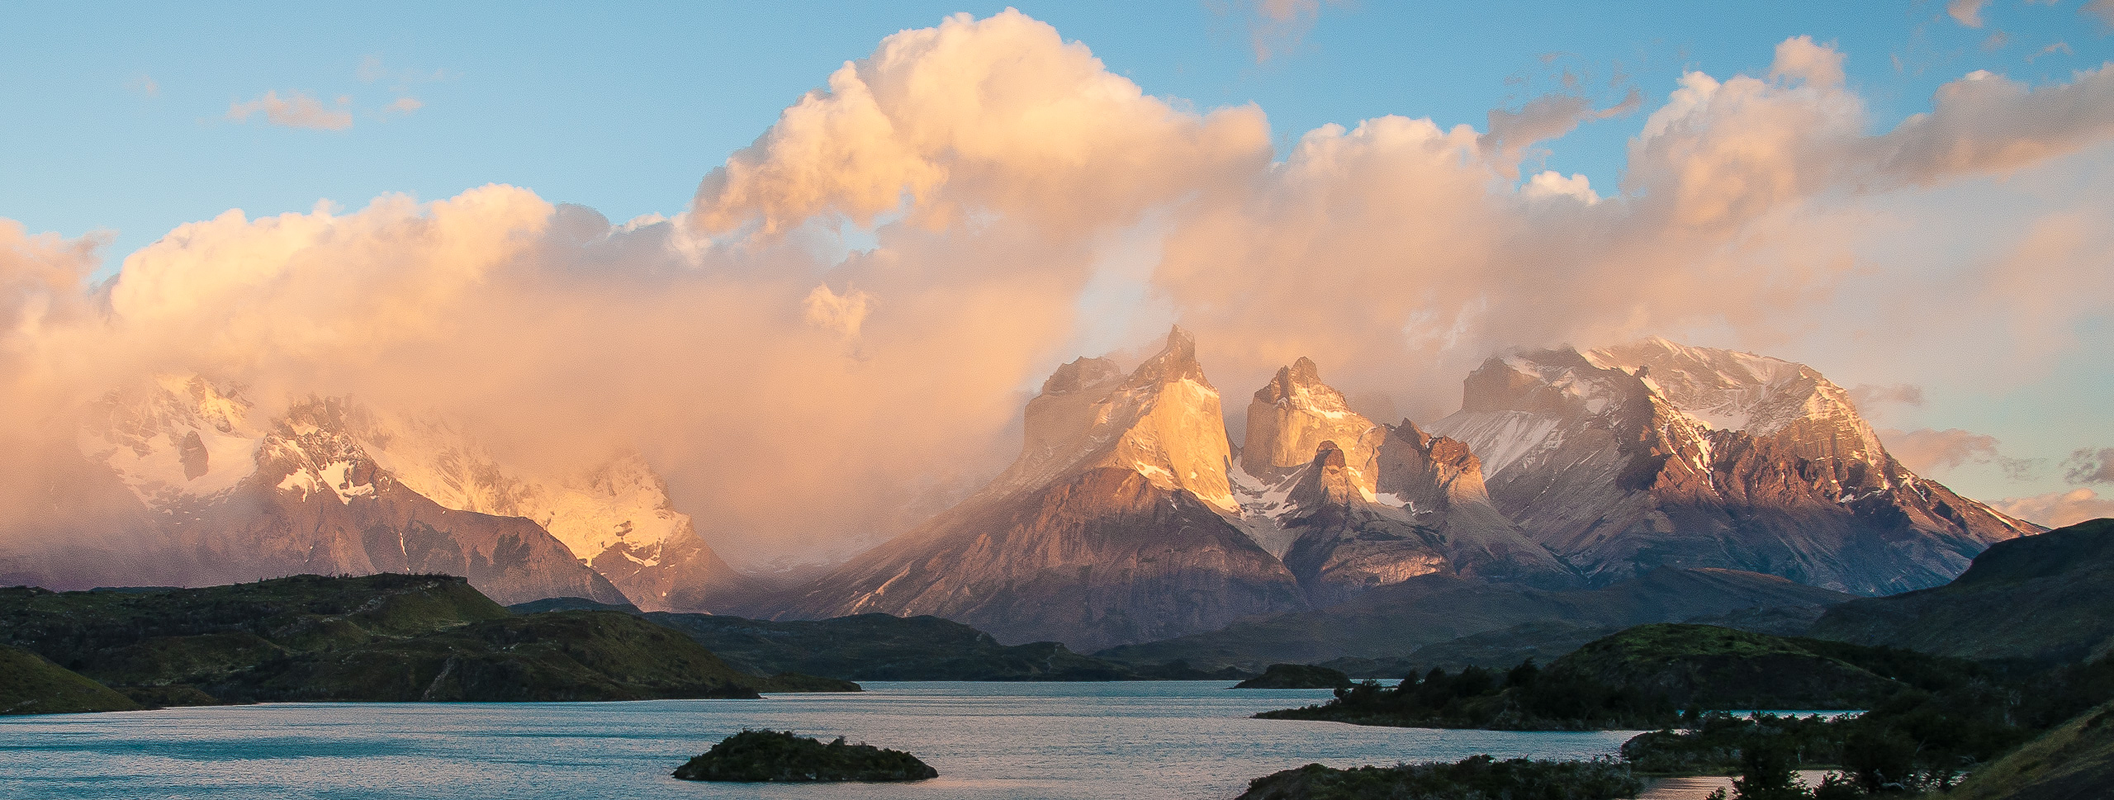 Sunrise at Torres del Paine, Patagonia | Photo: Angela Neal Grove